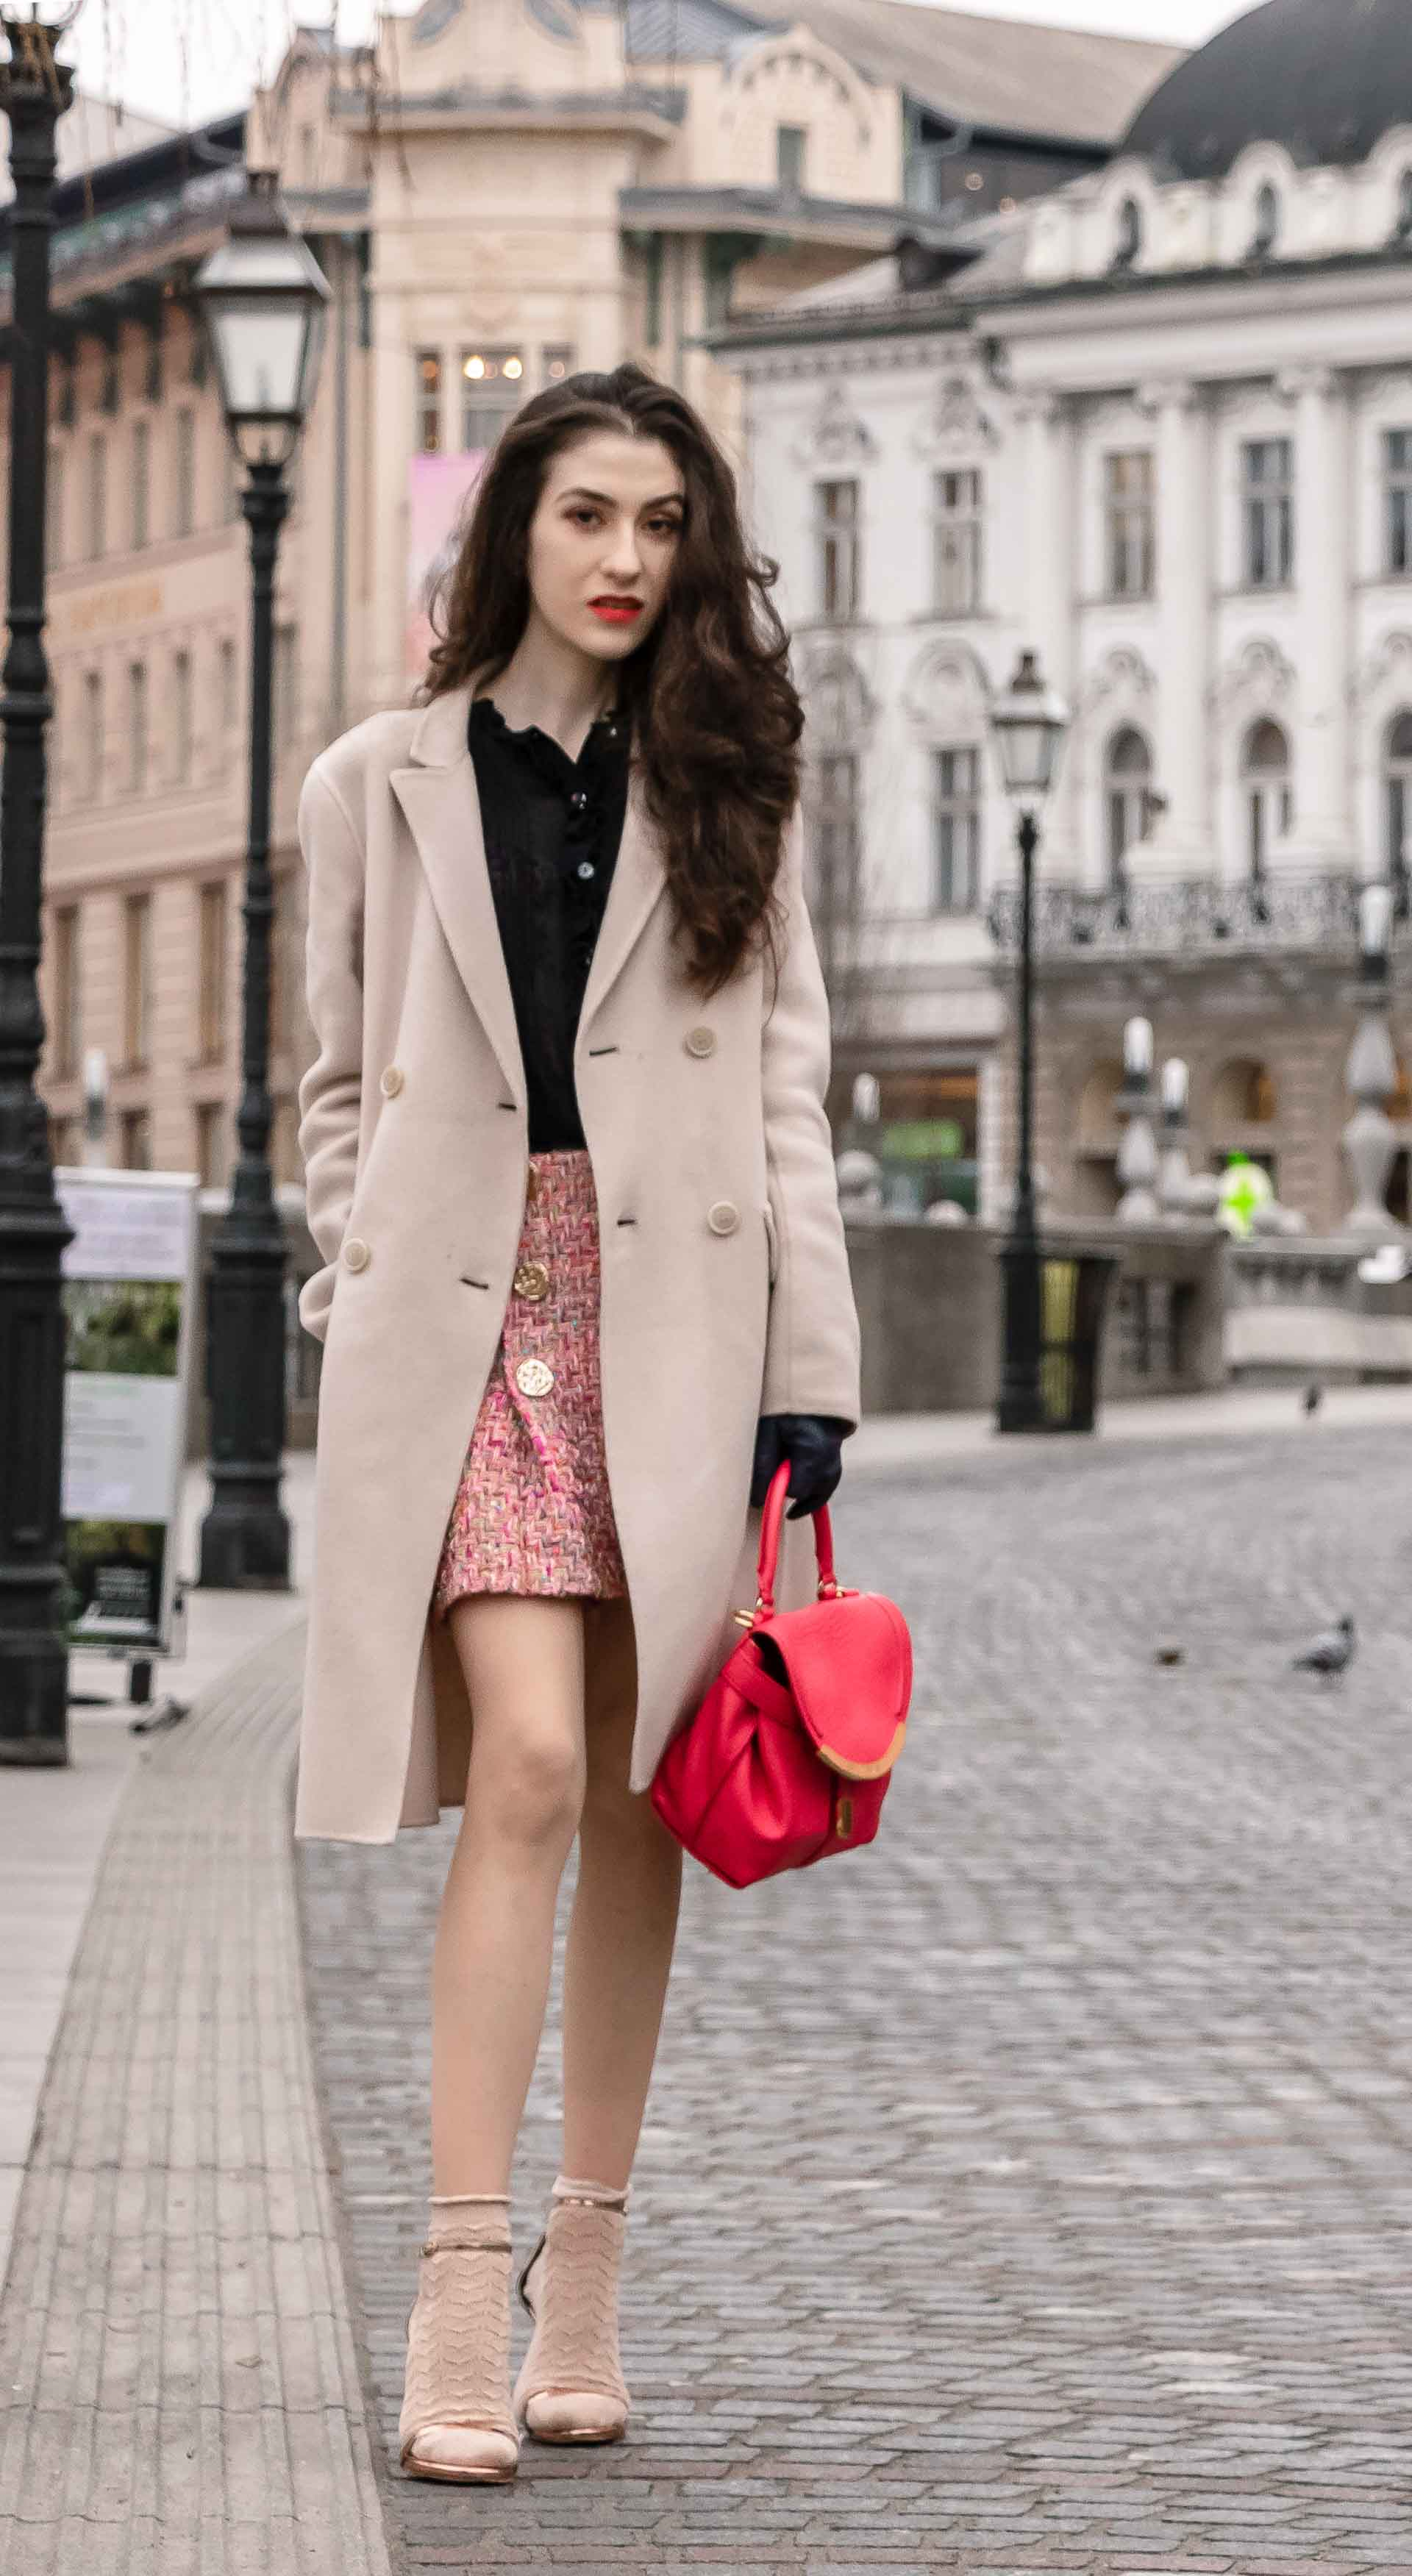 Fashion Blogger Veronika Lipar of Brunette from Wall Street wearing bronze socks and sandals from Stuart Weitzman, tweed Storets minis skirt, black blouse, off white Weekend Maxmara coat while in Ljubljana